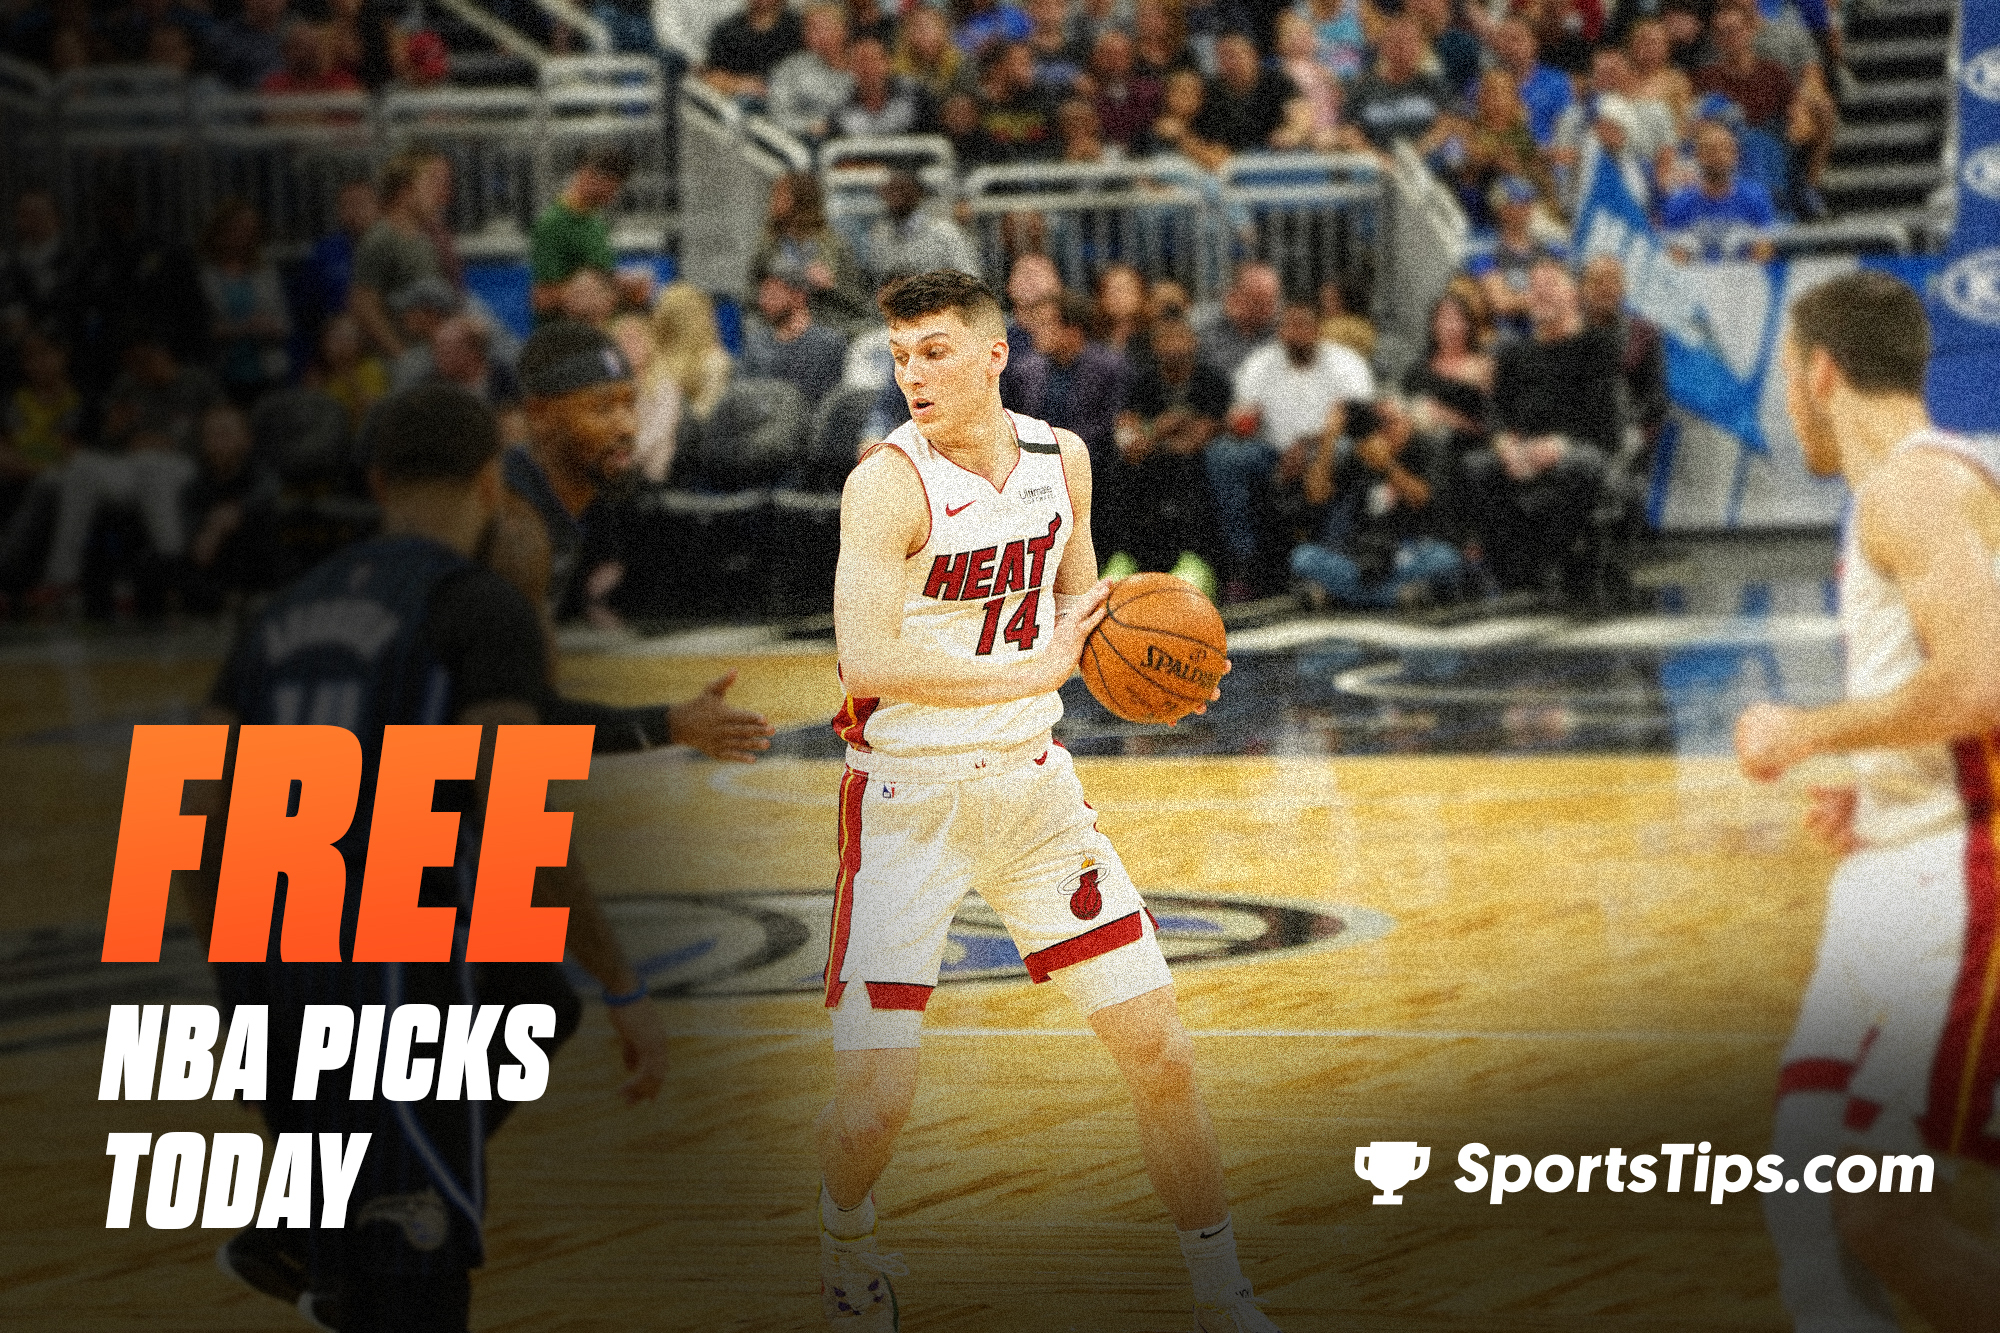 Free NBA Picks Today for Saturday, January 16th, 2021